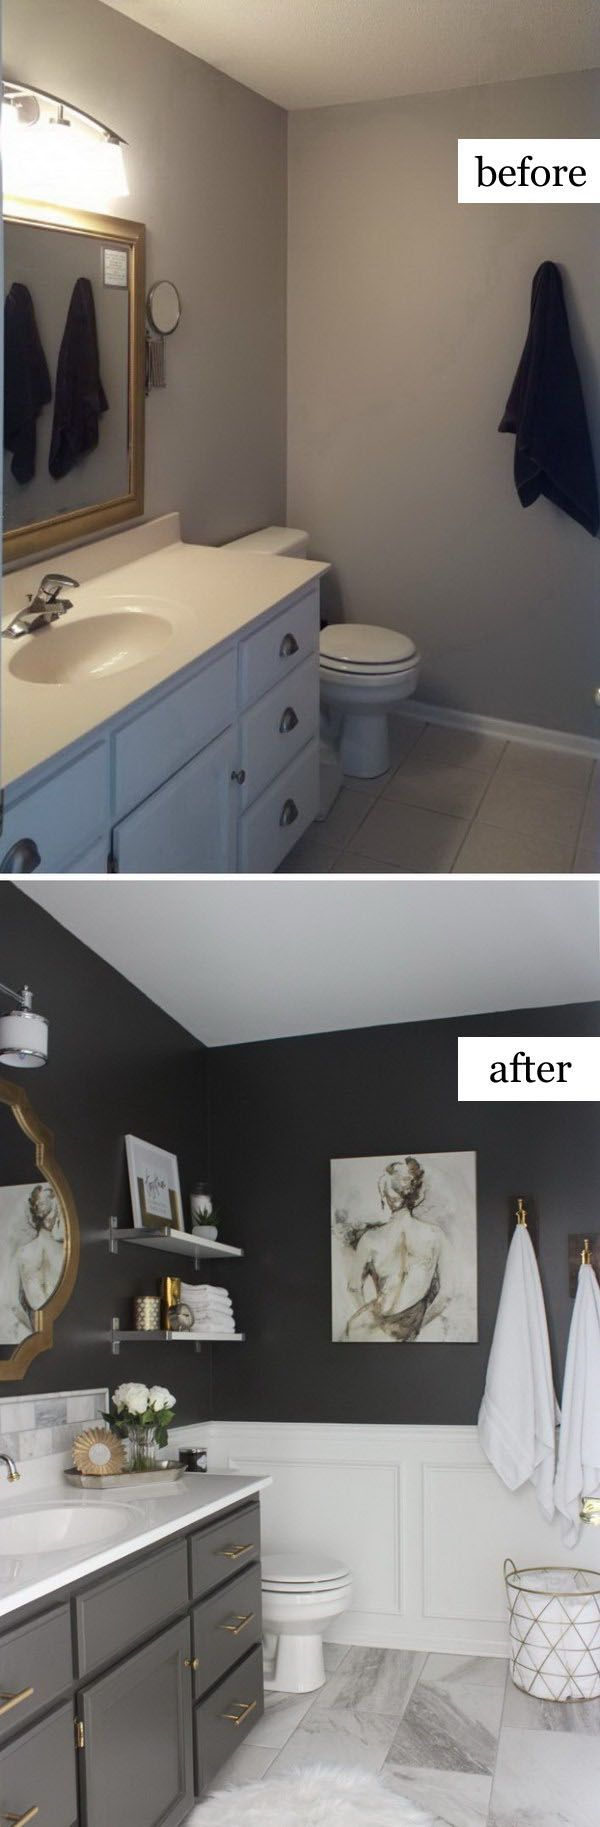 The Awesome Web Before and After Makeovers Most Beautiful Bathroom Remodeling Ideas